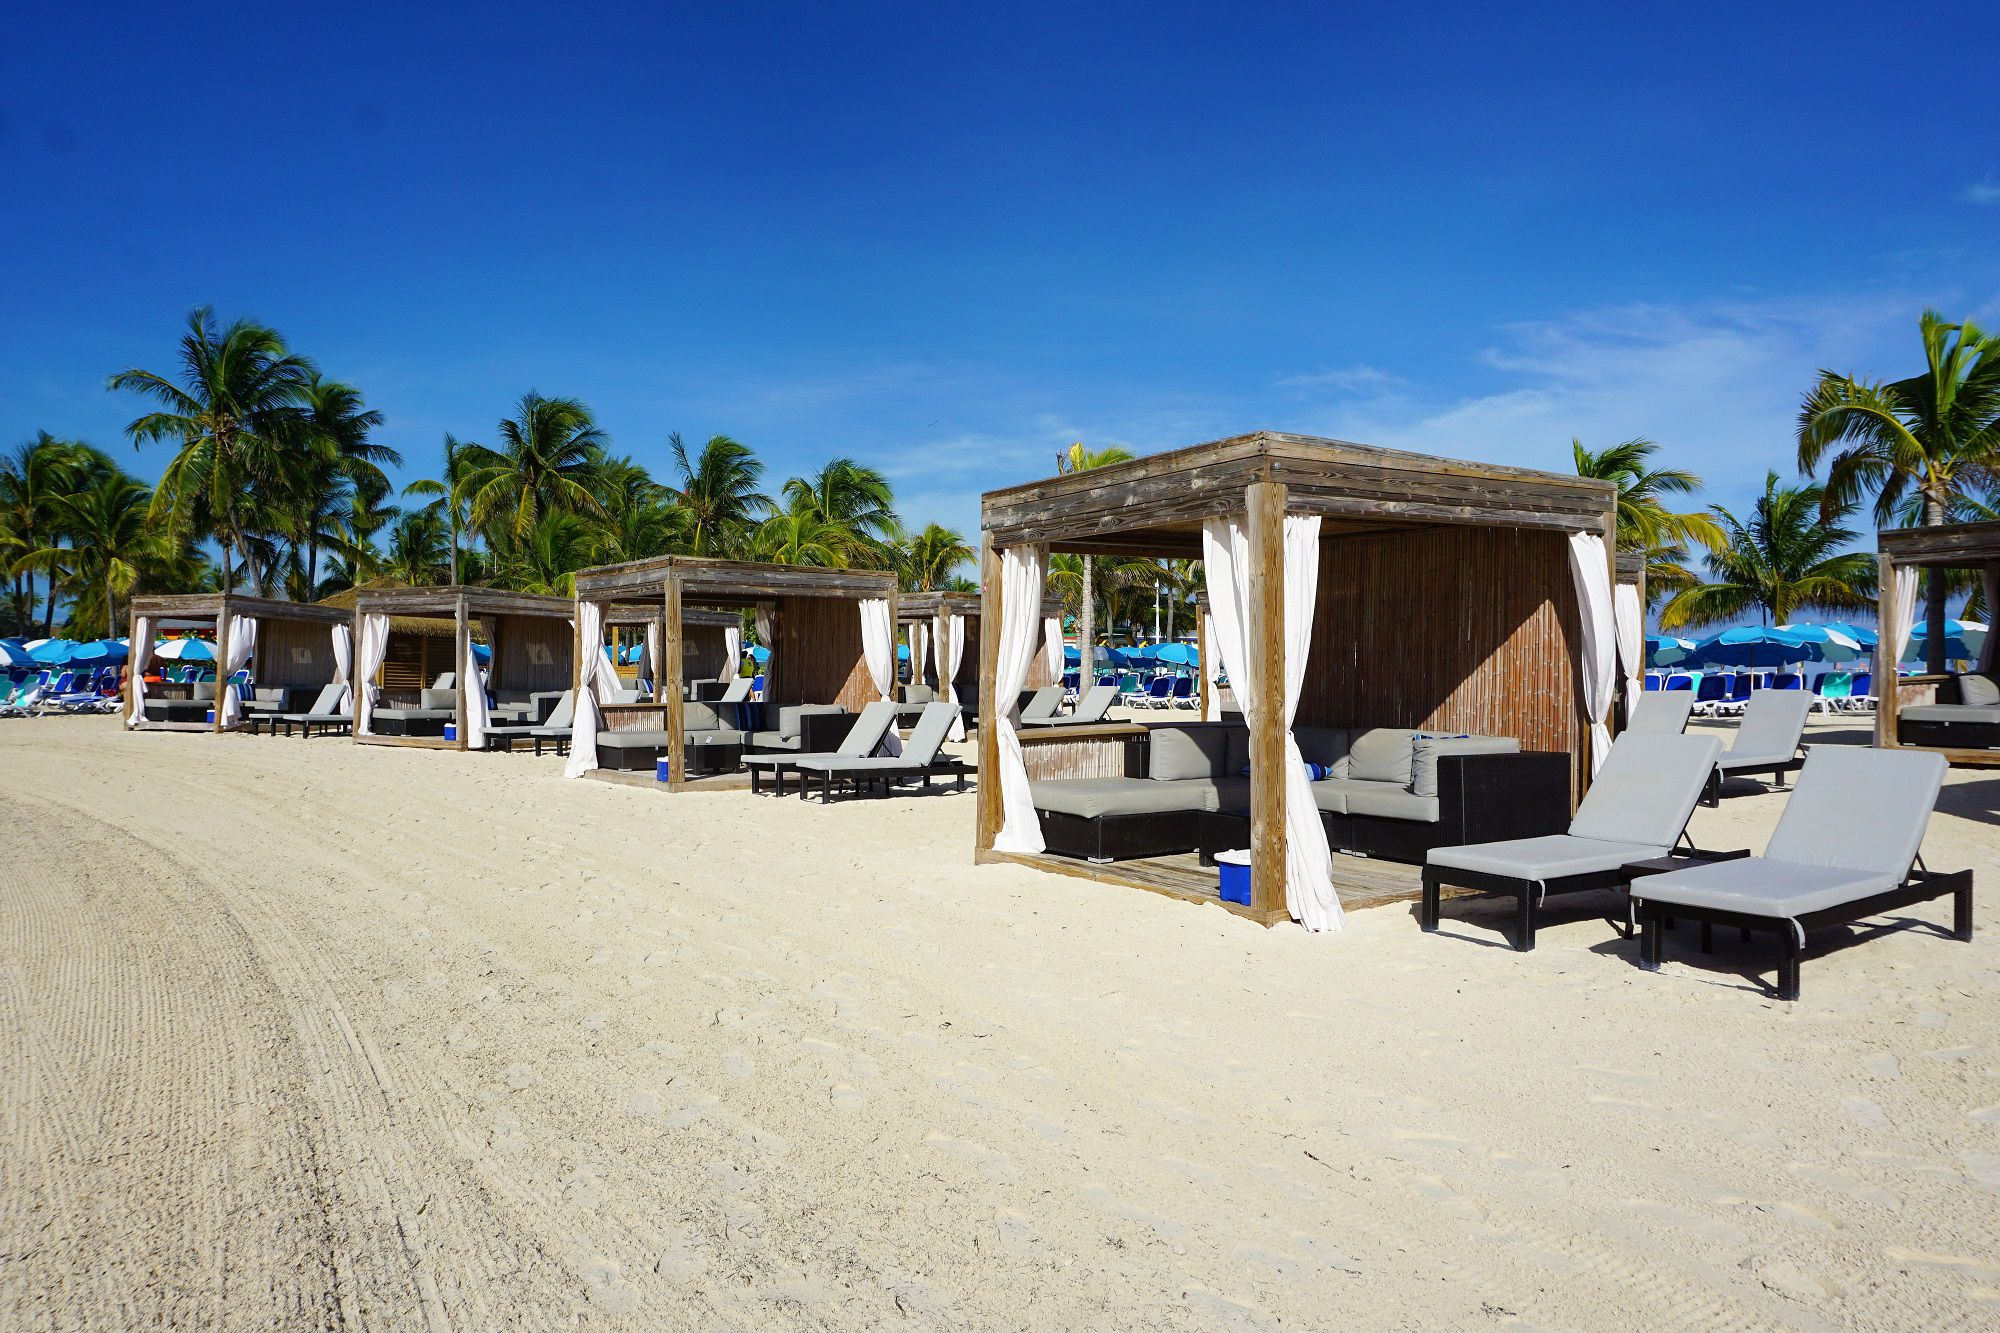 Beach Bungalows on Perfect Day at CocoCay